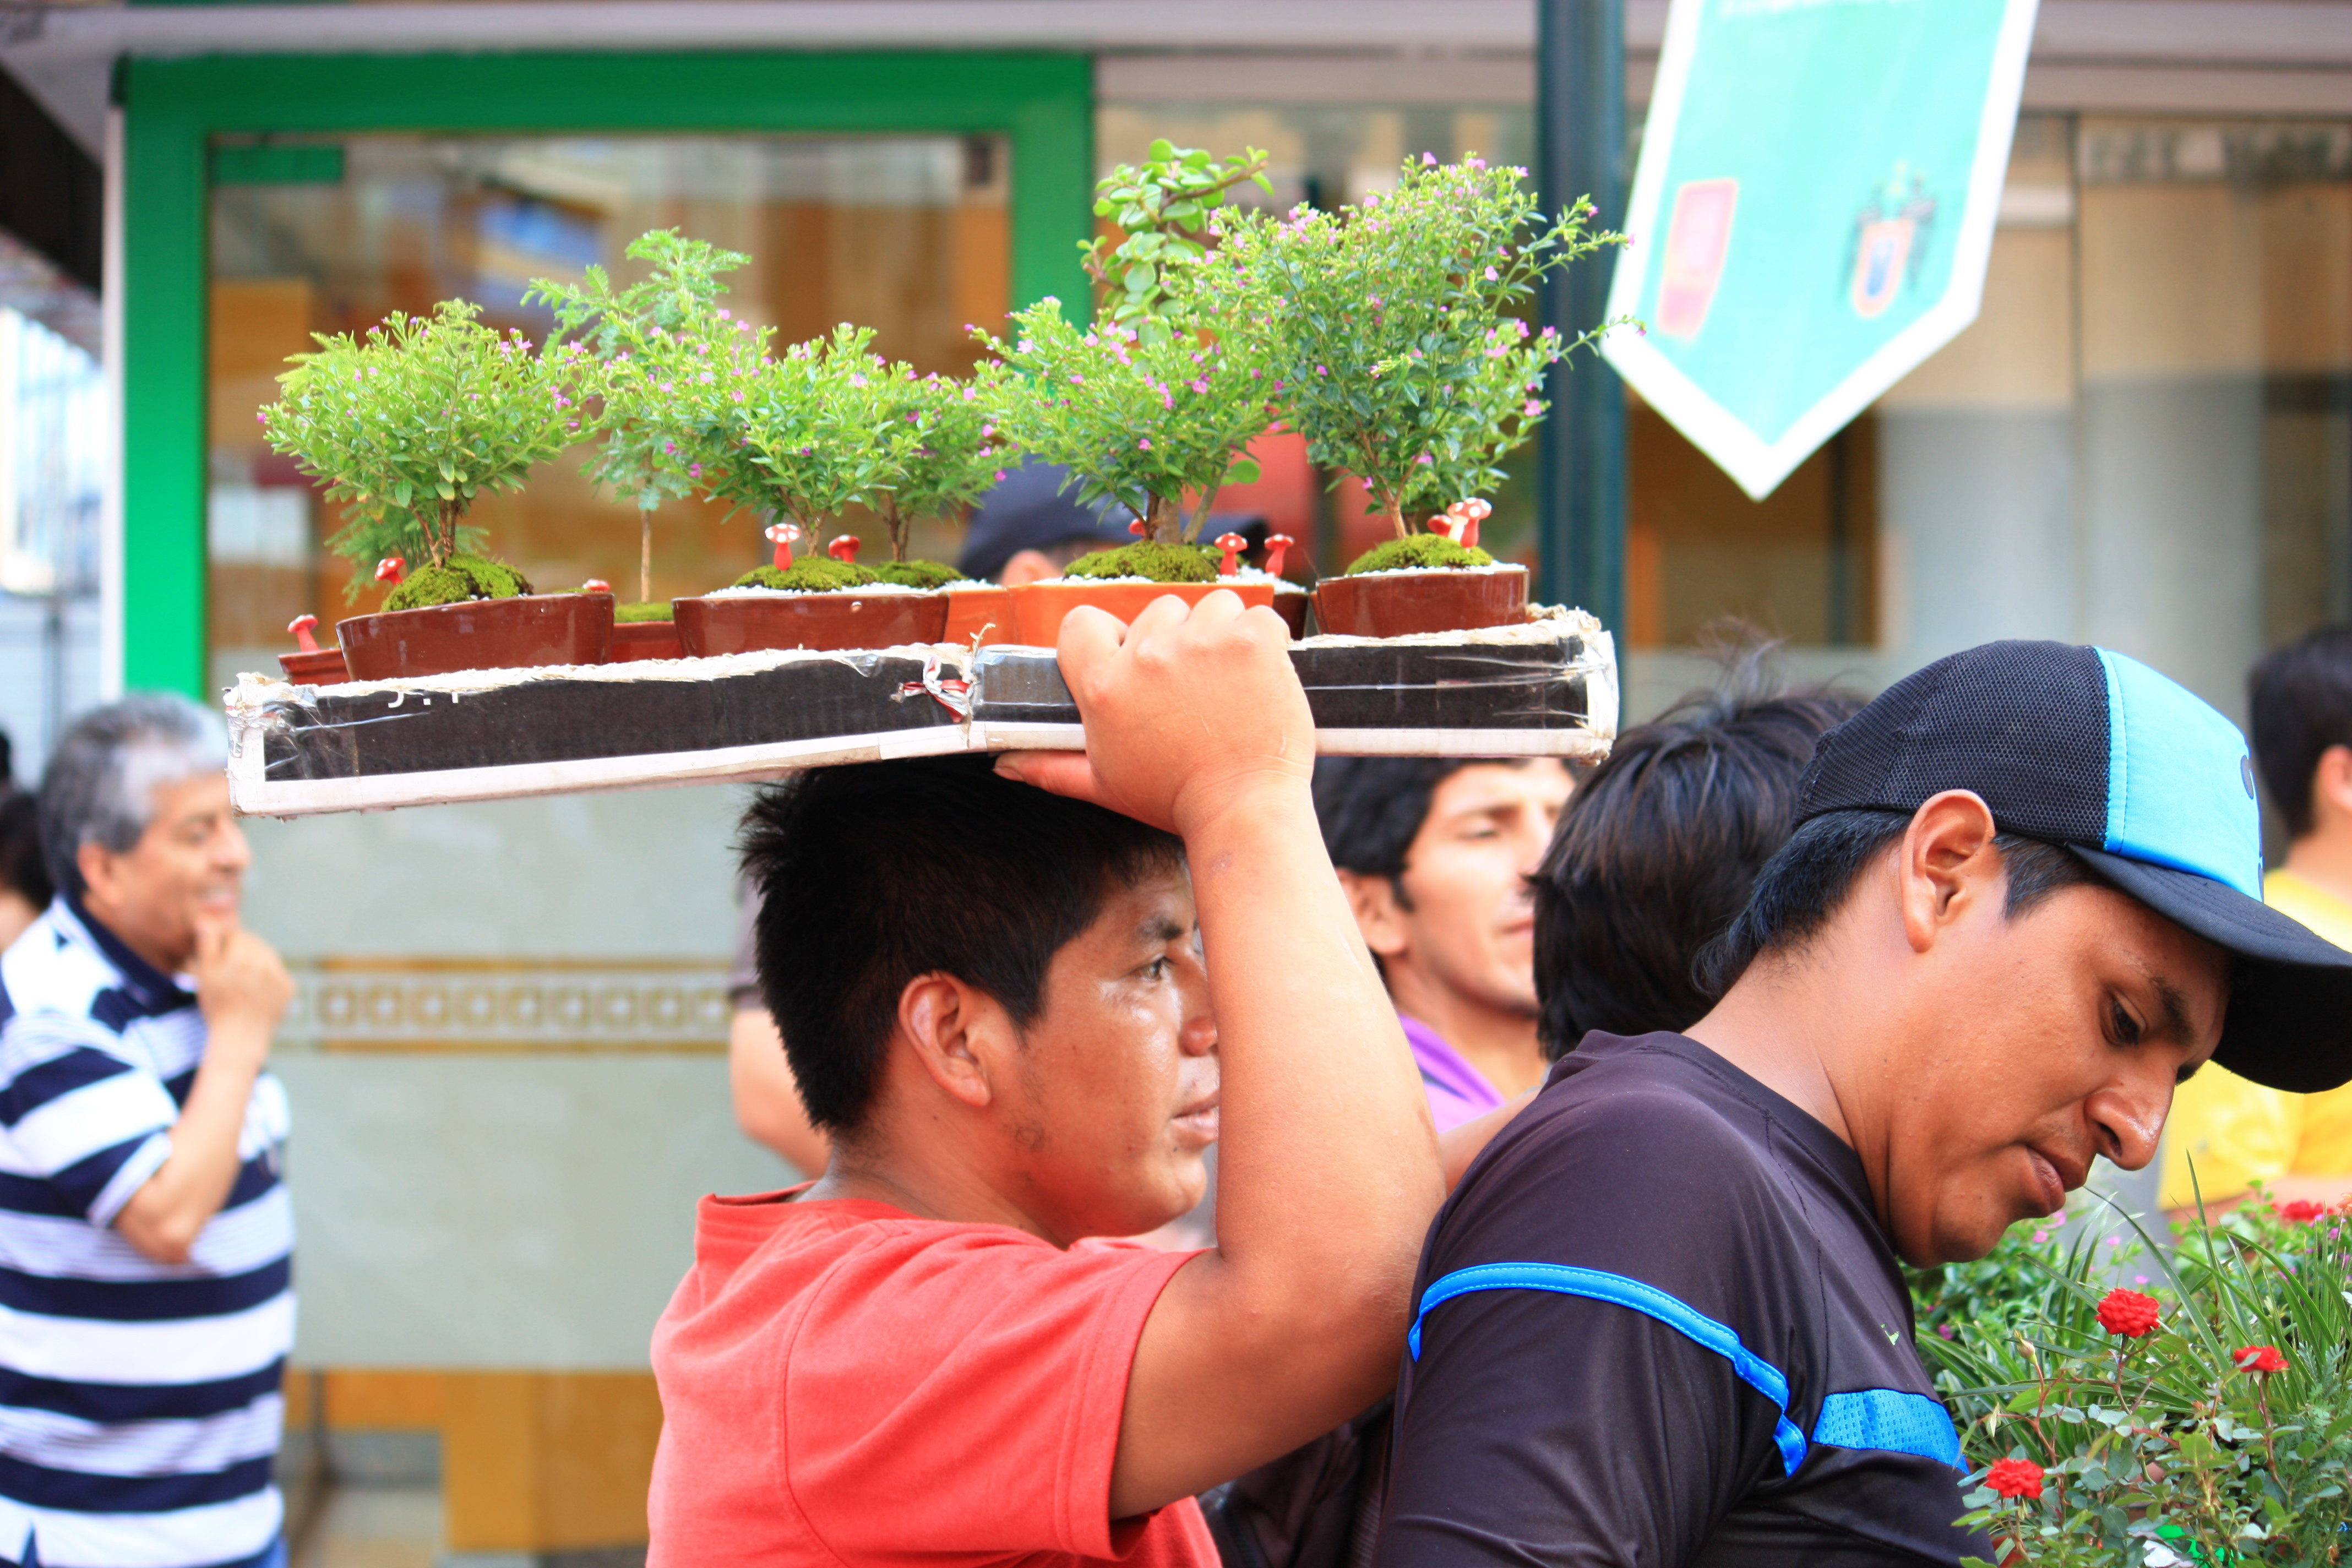 Side-shot of man holding miniature trees in Lima